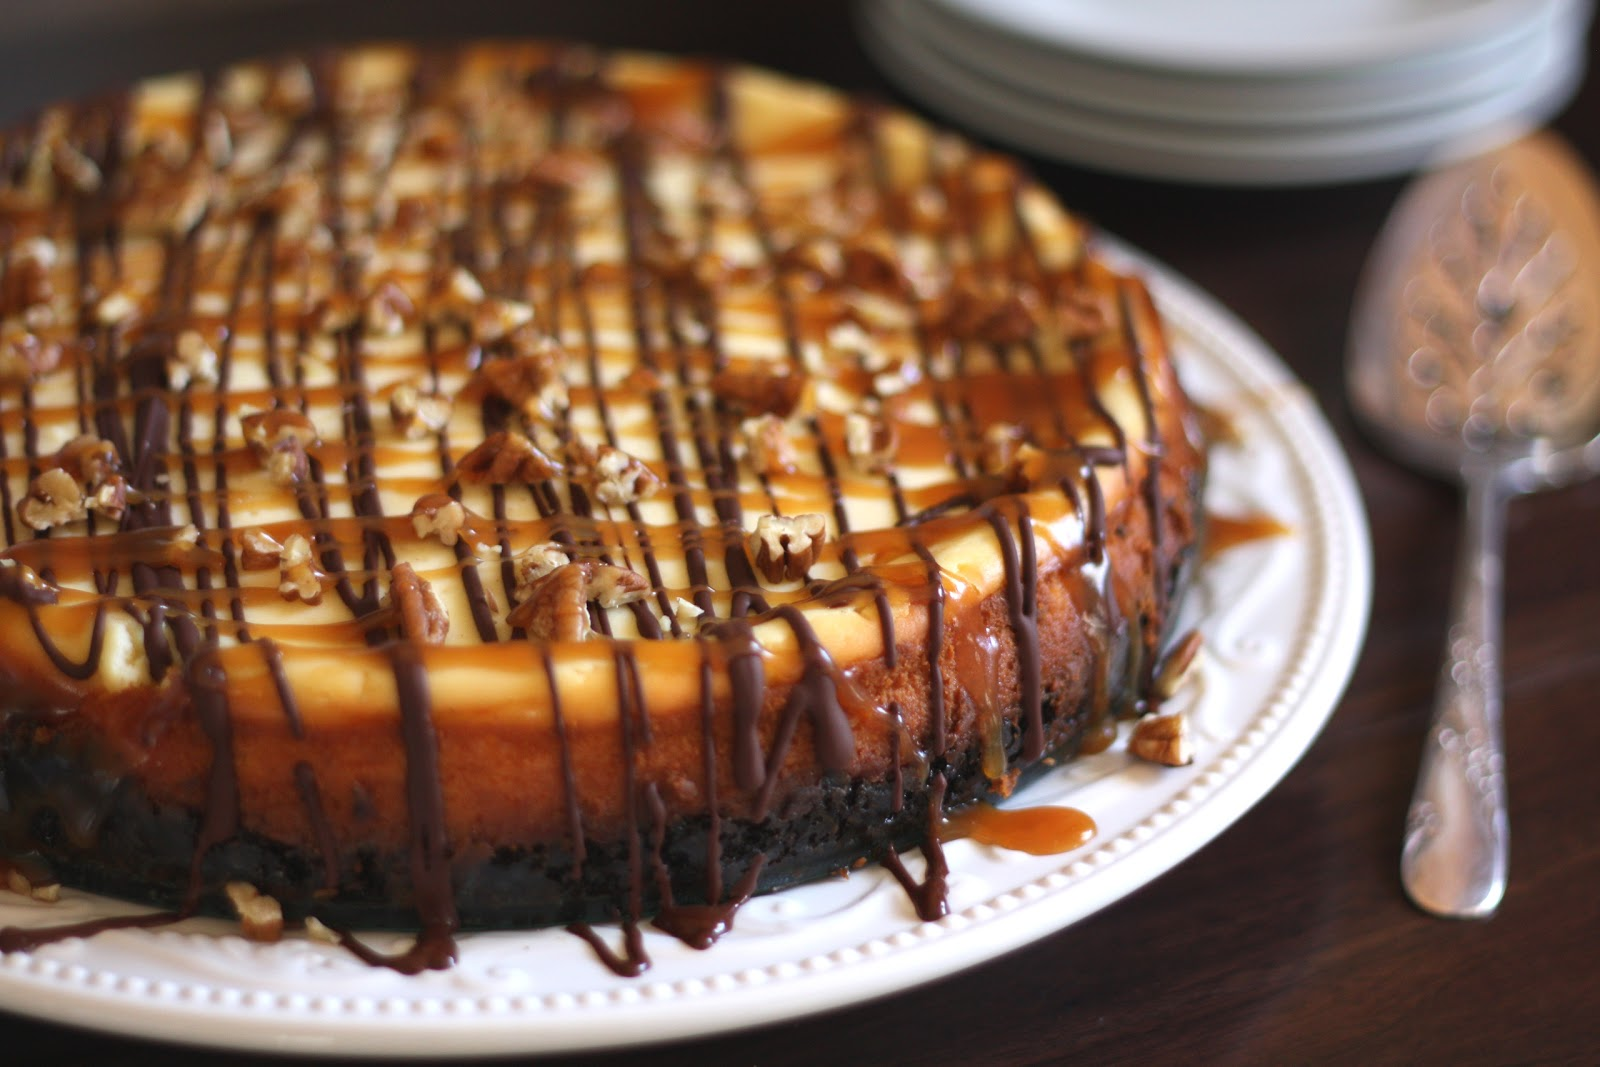 ... In The Kitchen: Turtle Cheesecake with Caramel, Chocolate and Pecans